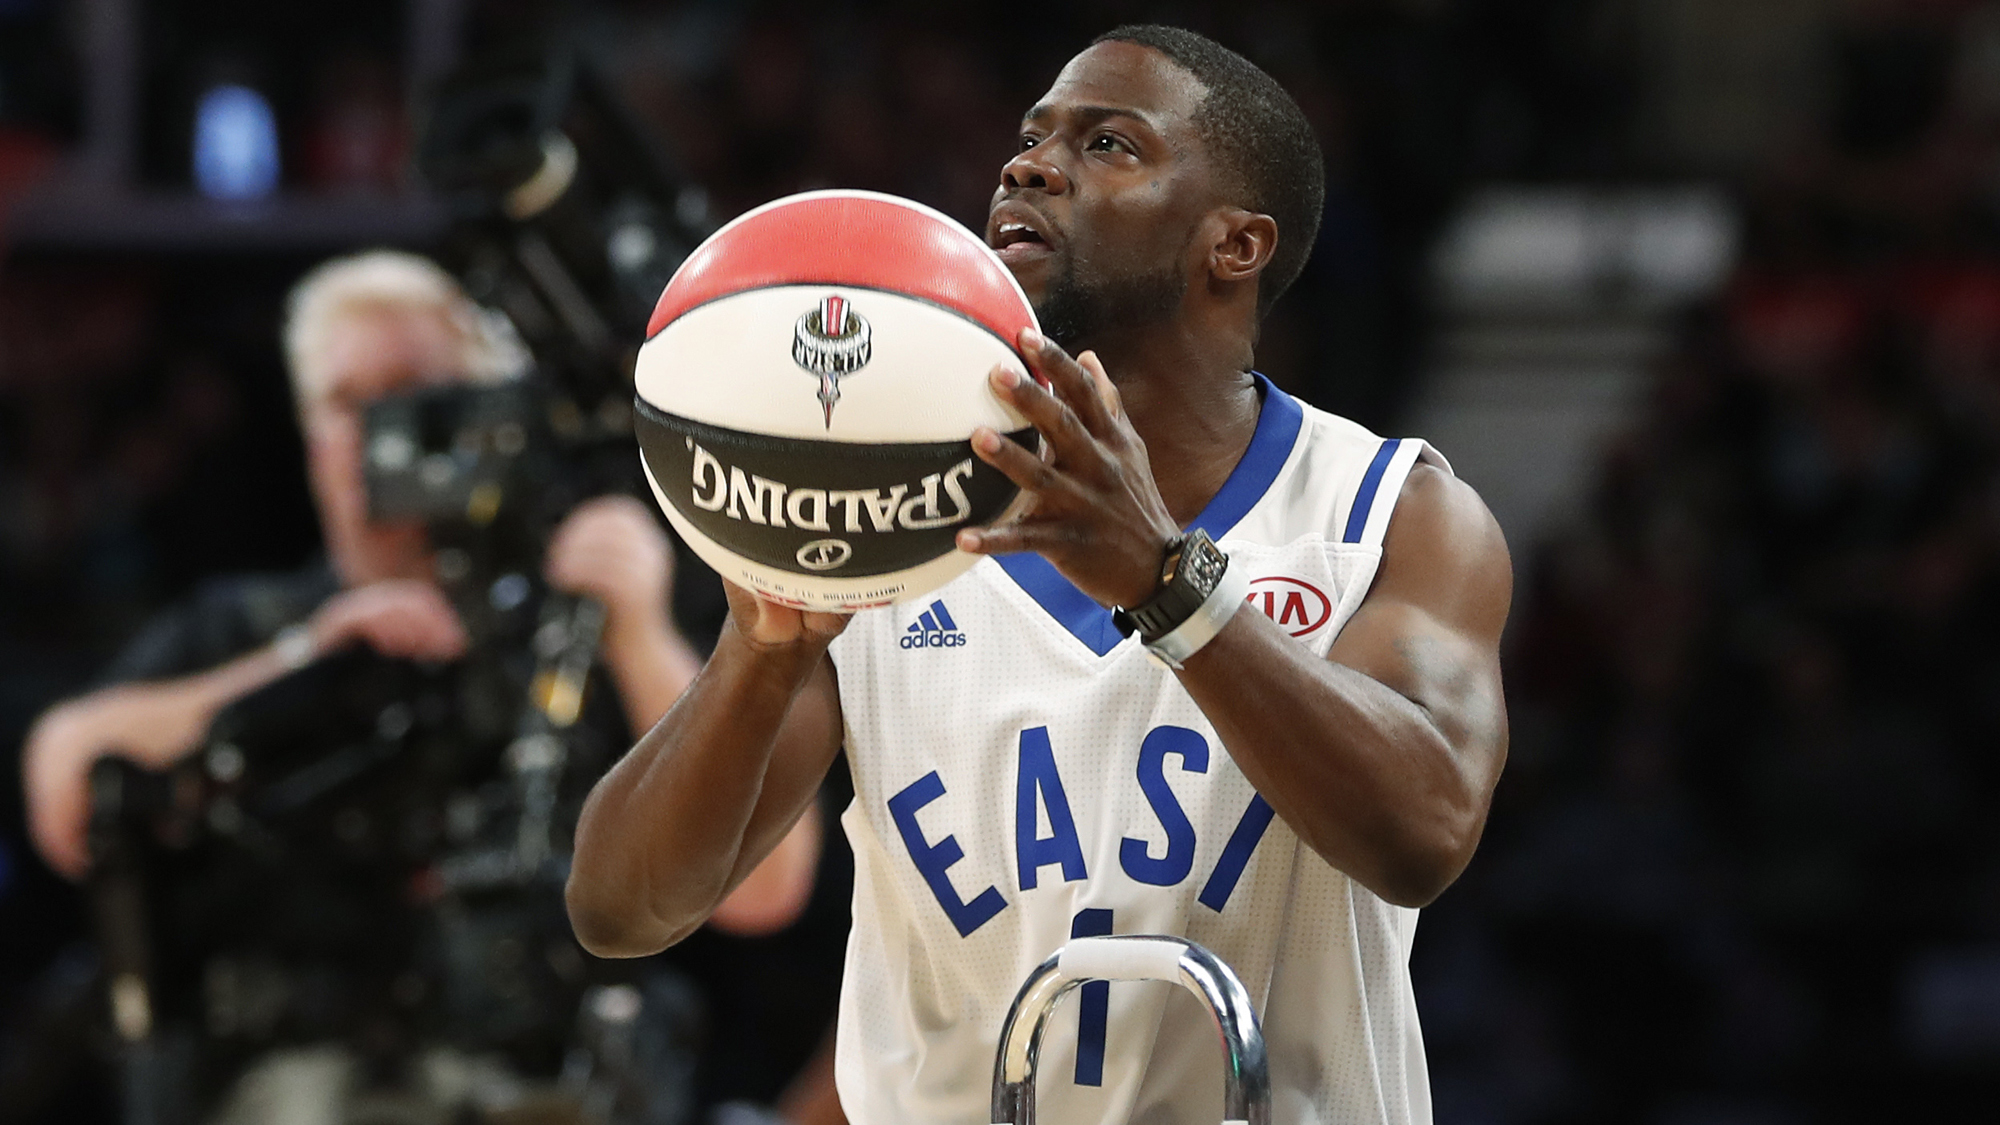 aadc55b32 Kevin Hart on why he became an athlete